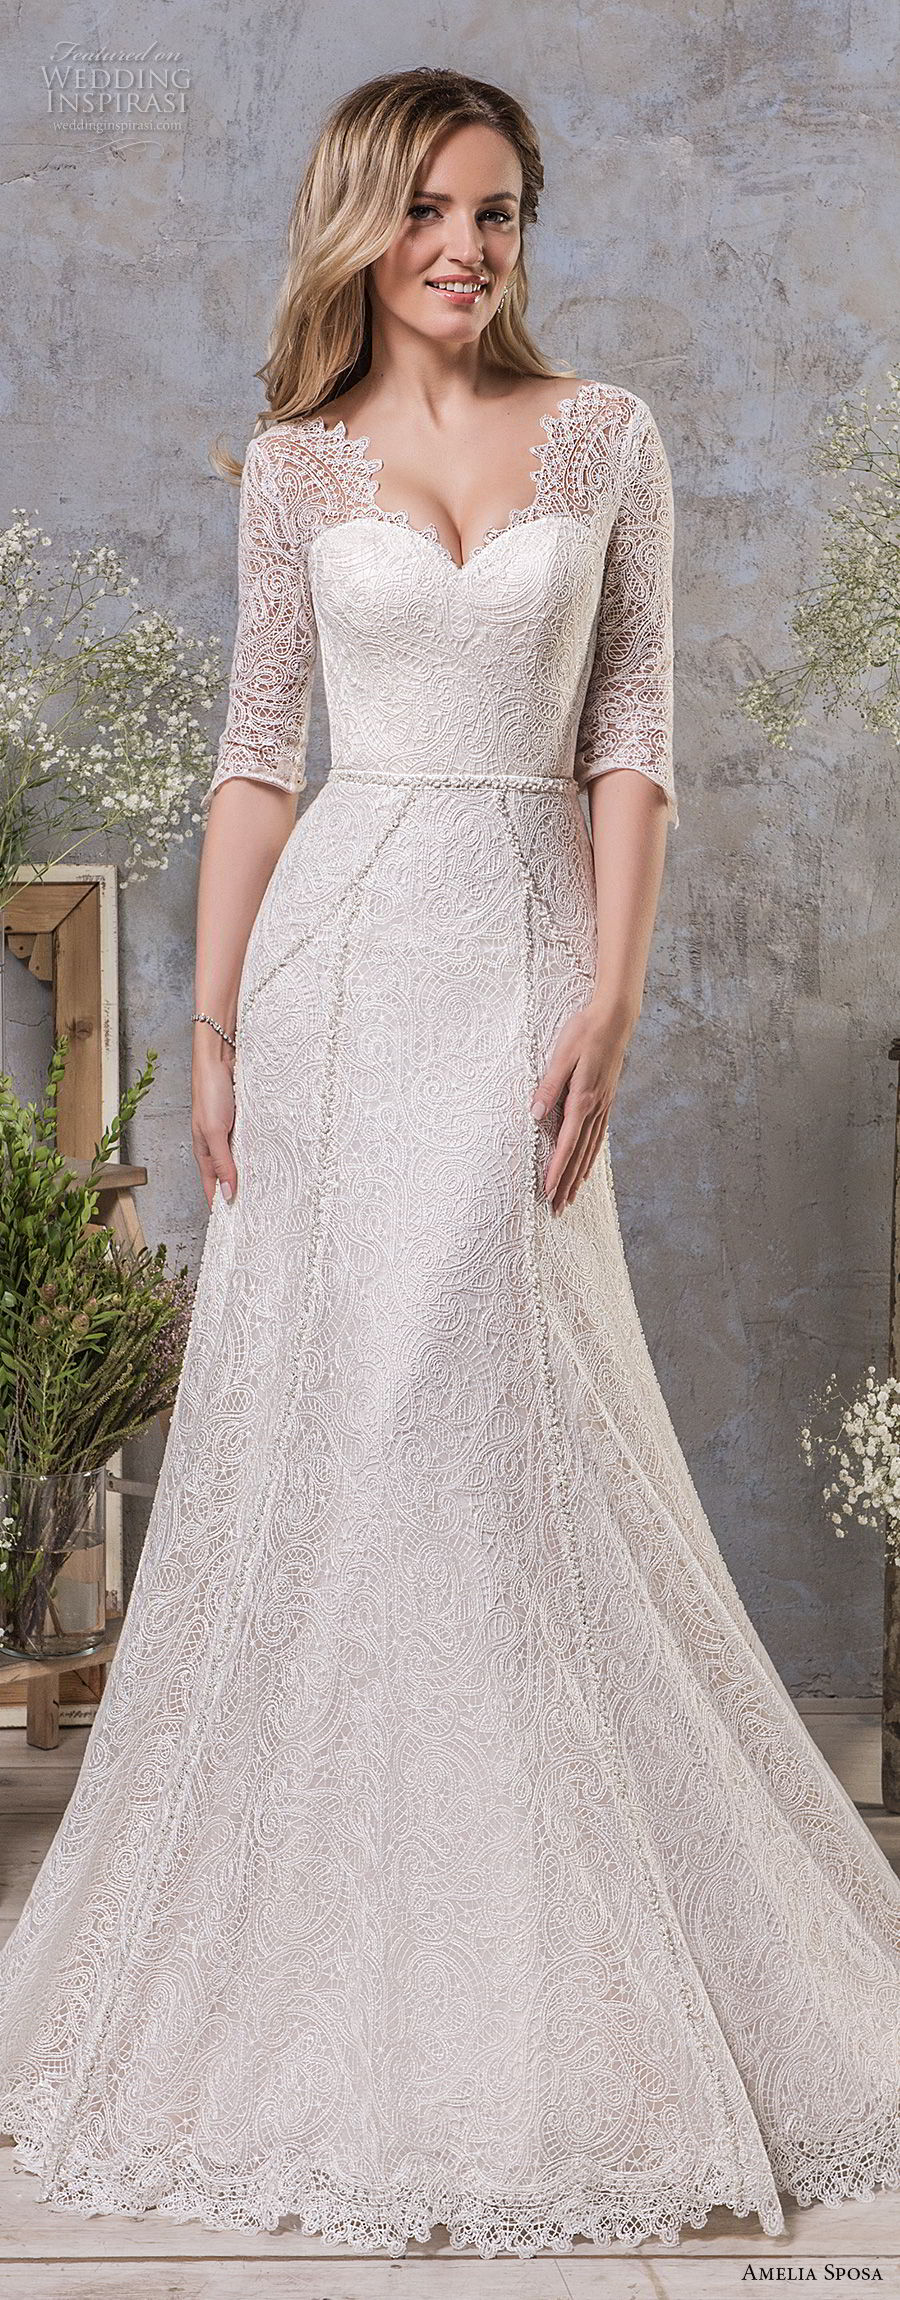 amelia sposa fall 2018 bridal half sleeves sweetheart neckline full embellishment elegant classic a line wedding dress v back medium train (6) mv